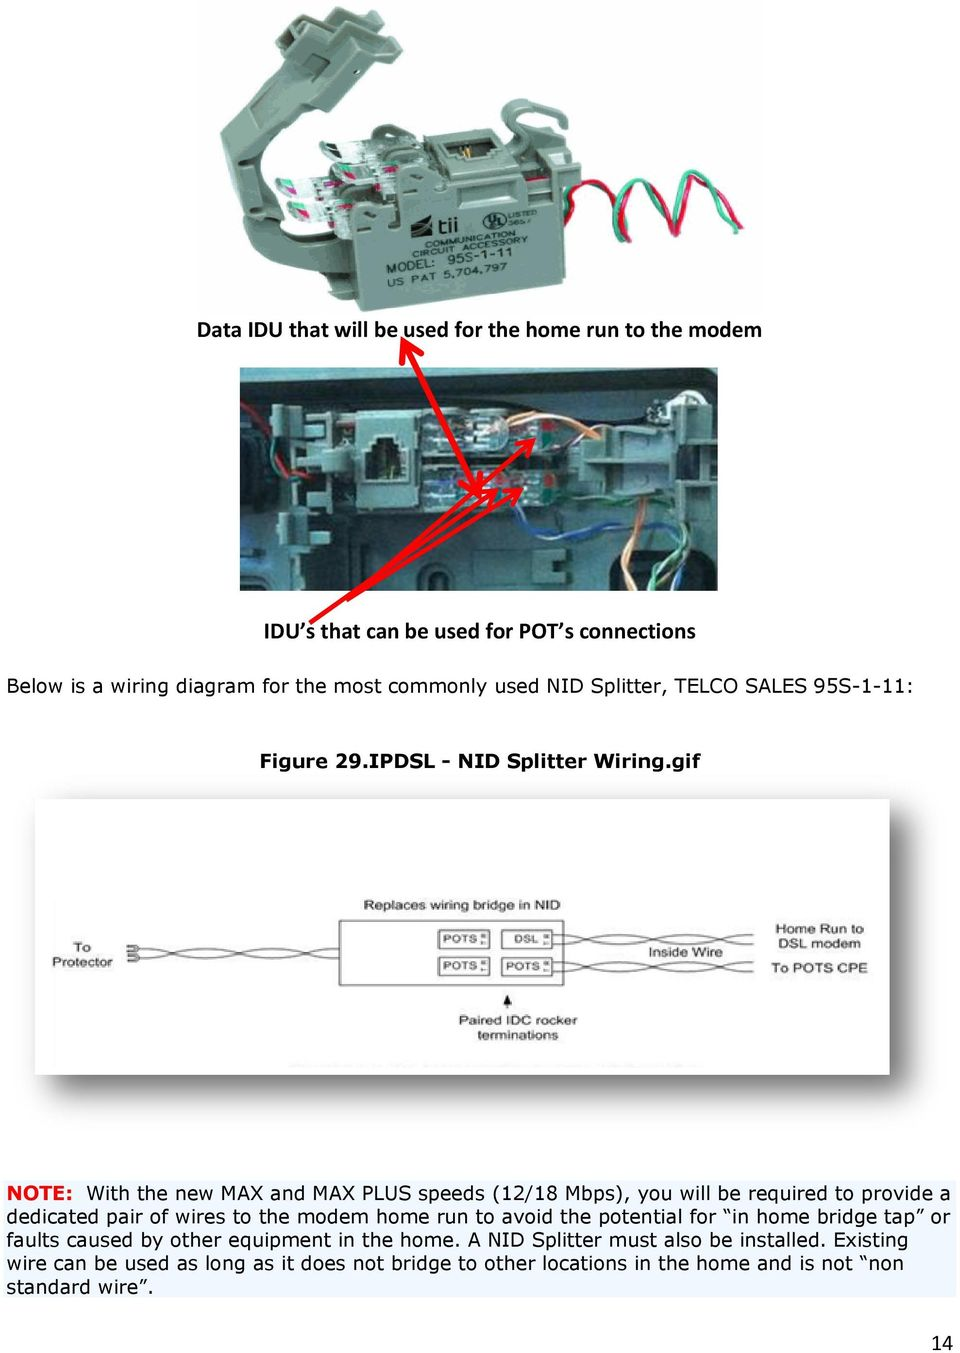 U Verse Ipdsl Hsia With Cvoip Pdf Internet 4 Pair Wiring Diagram Gif Note The New Max And Plus Speeds 12 18 Mbps